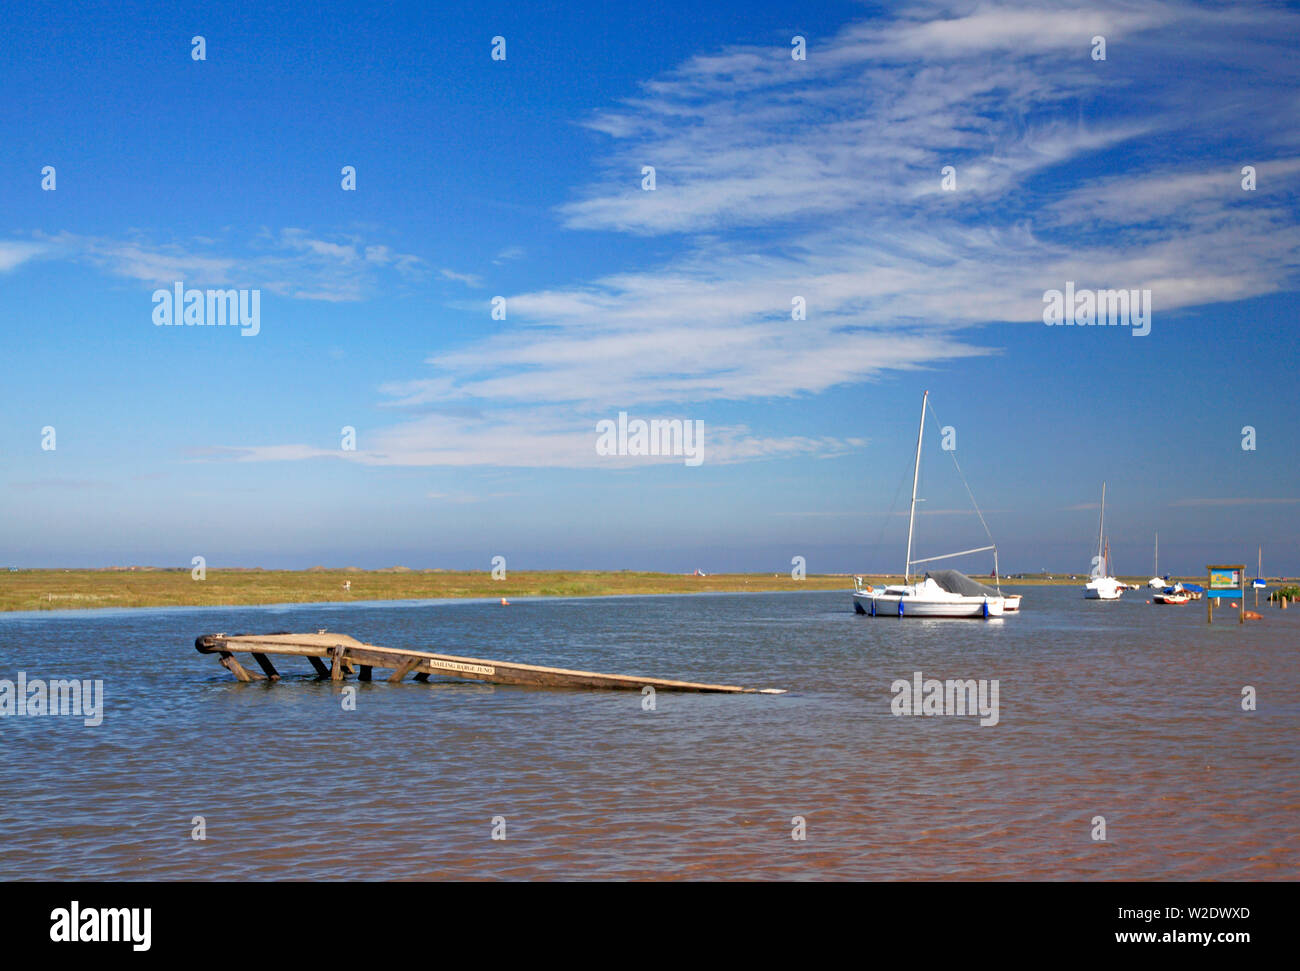 A view of yachts anchored in the channel to the harbour at flood tide in North Norfolk at Blakeney, Norfolk, England, United Kingdom, Europe. - Stock Image